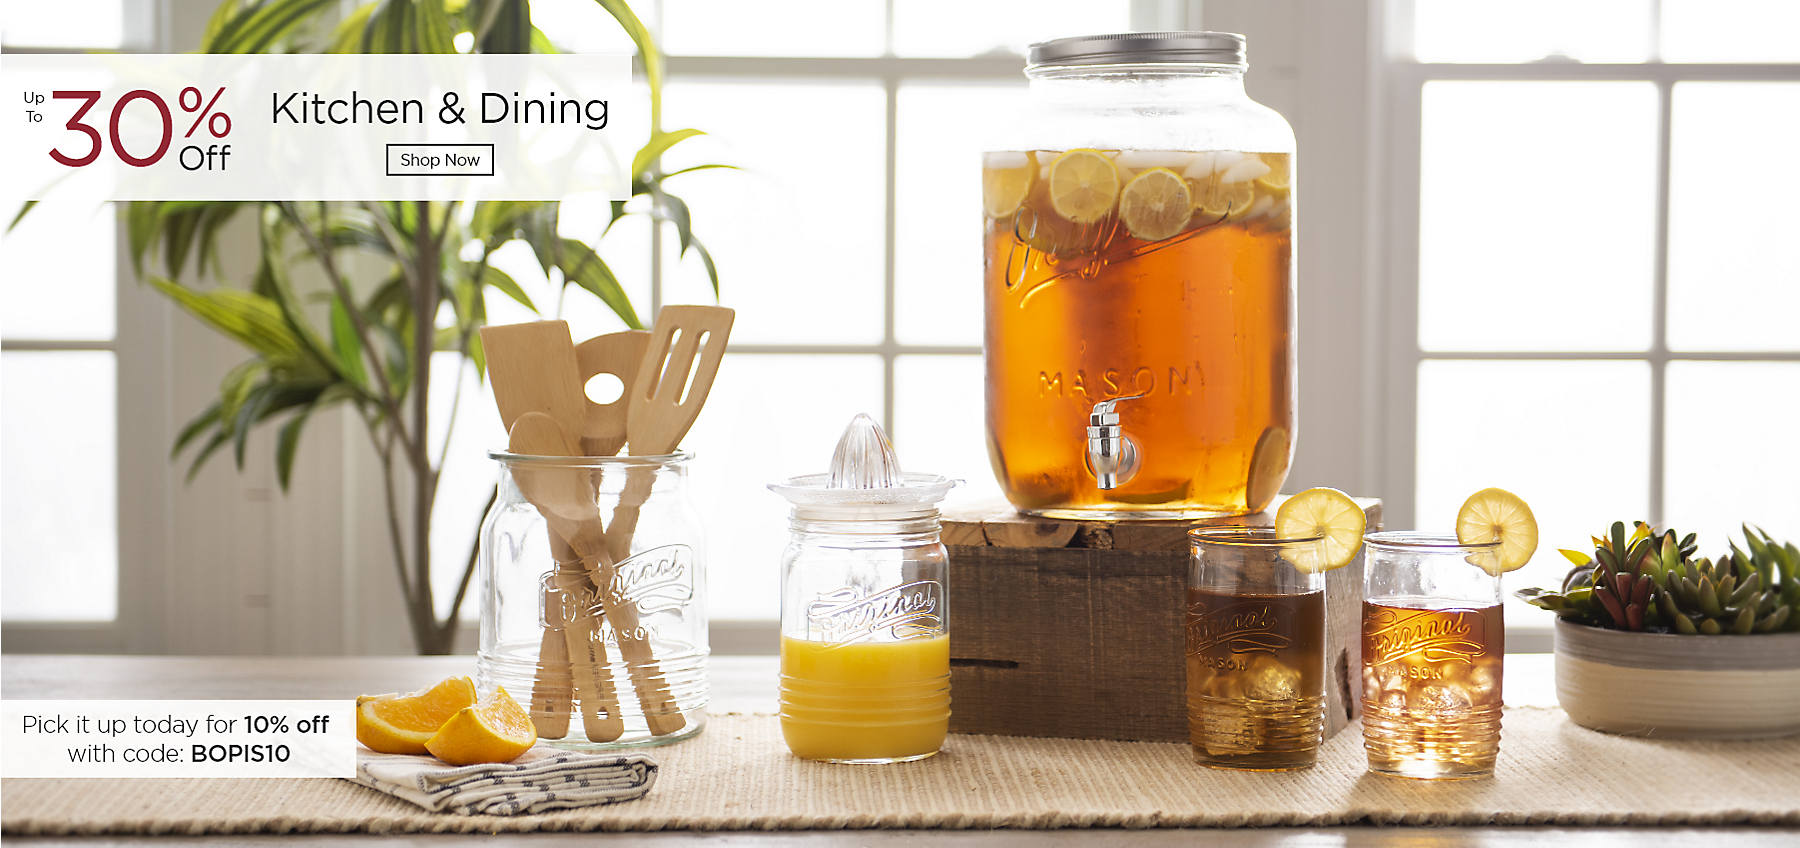 Kitchen & Dining Up to 30% Off Shop Now Pick it up today for 10% off with code: BOPIS10